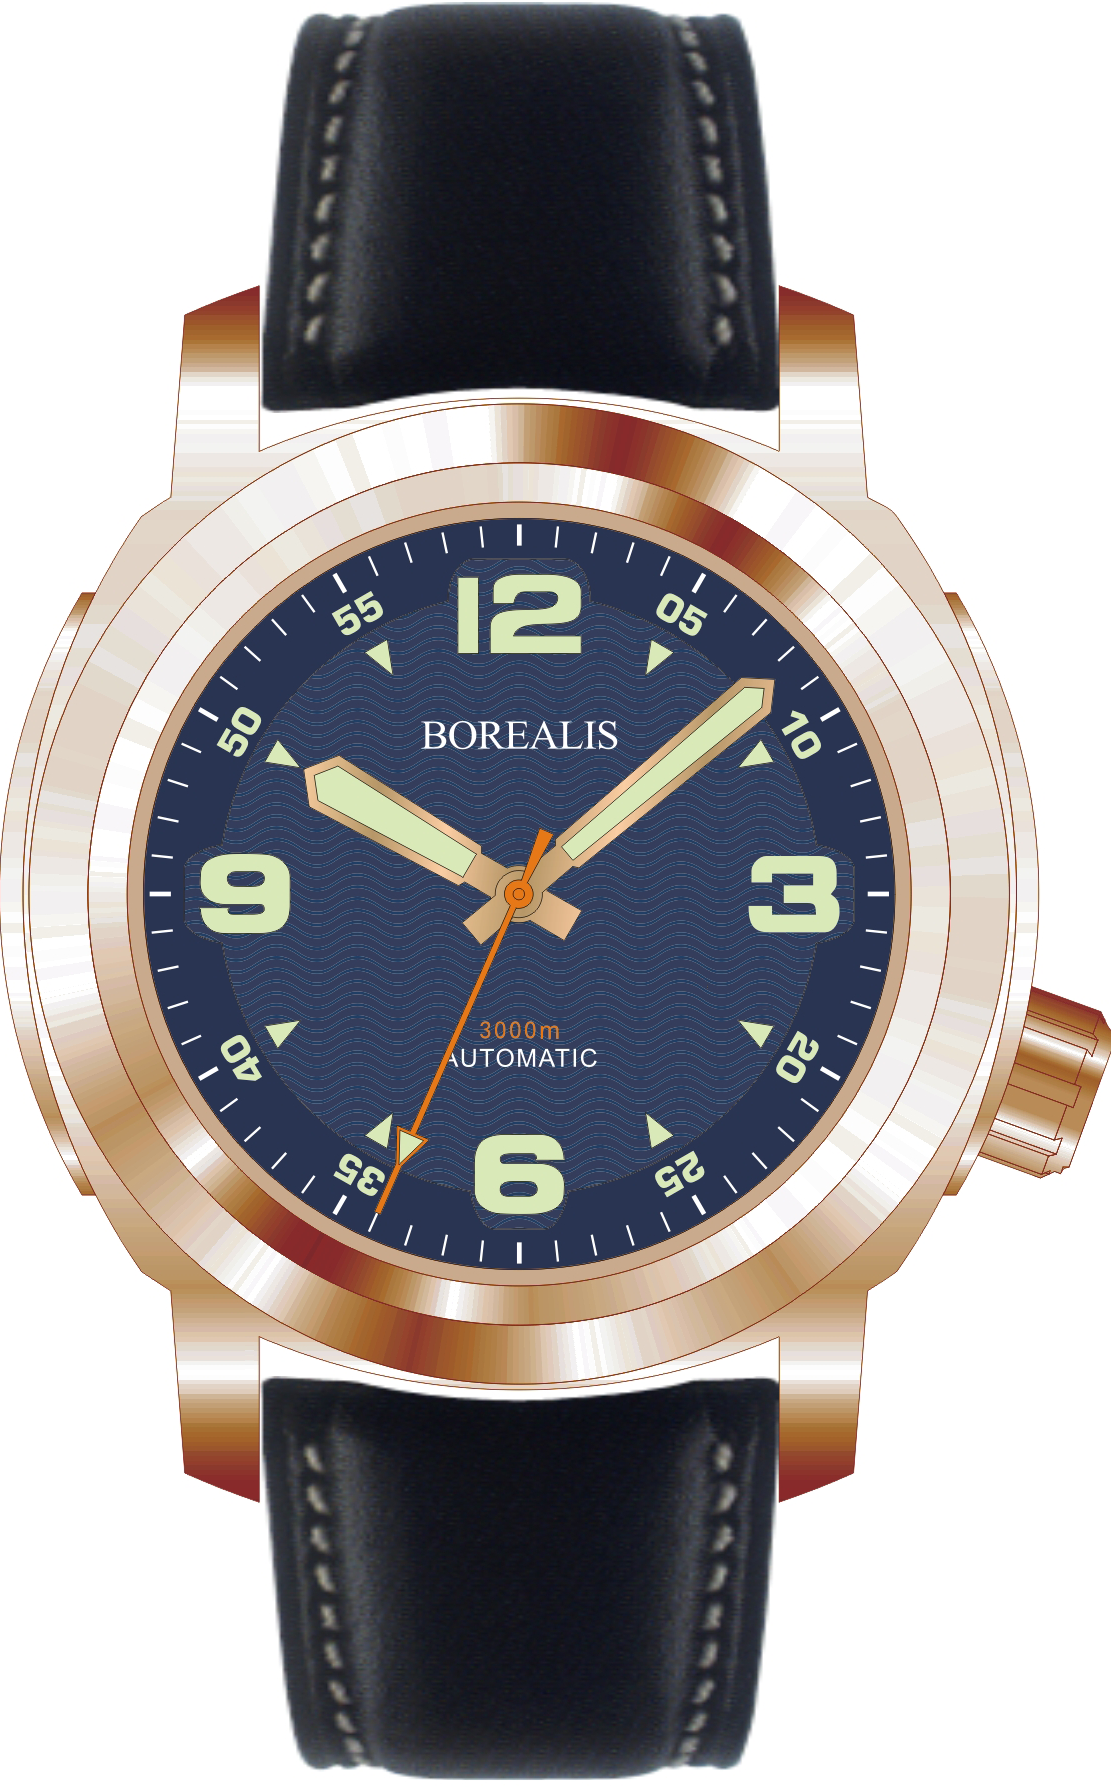 Borealis Batial Bronze CuSn8 Blue 3000m Miyota 9015 Automatic Diver Watch No Date Display BBCUSN8BLUENODATE